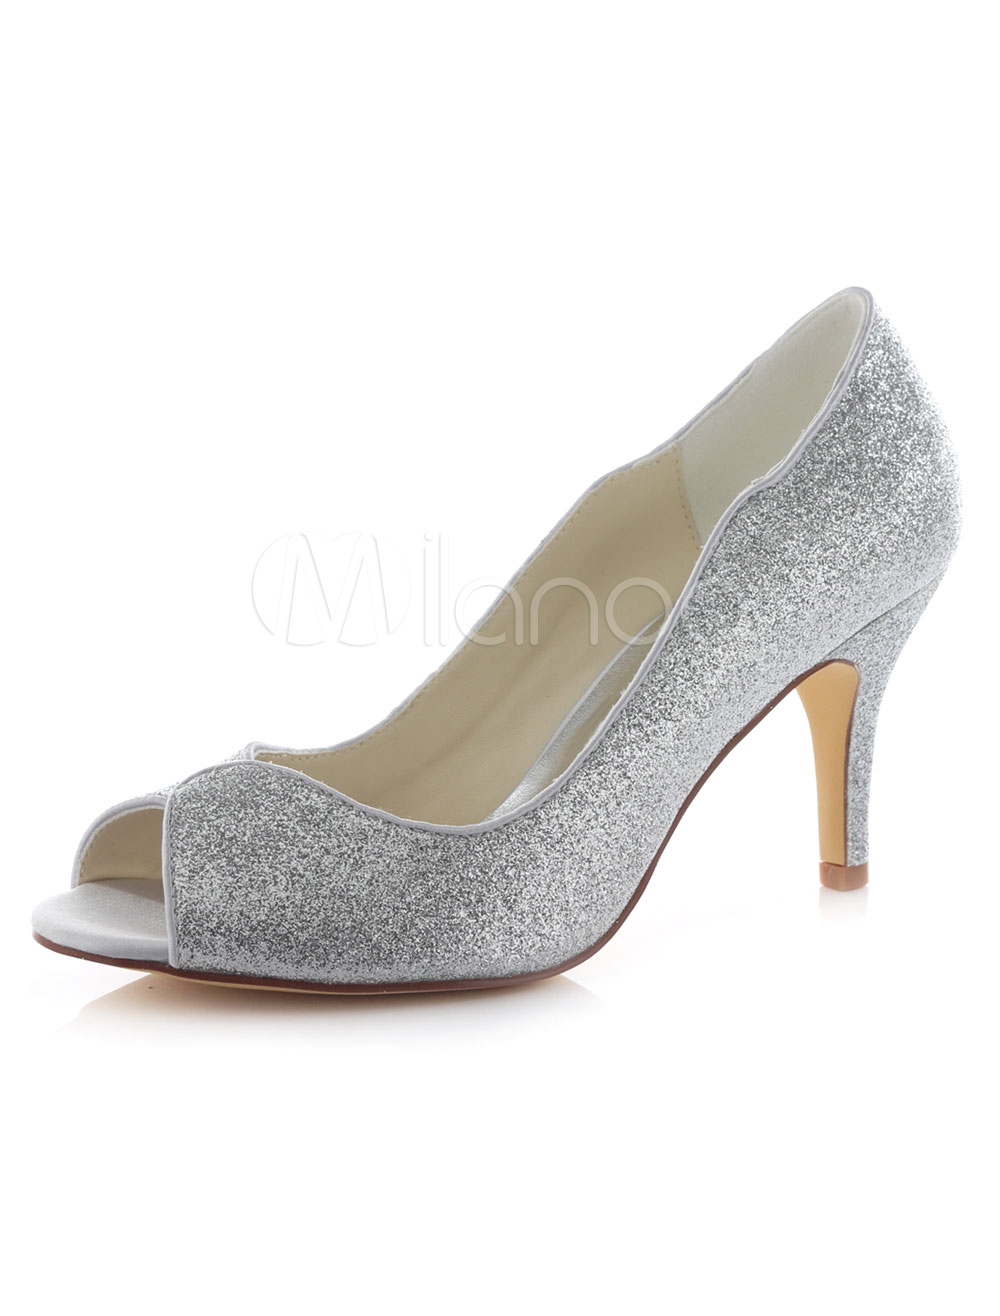 Silver Wedding Shoes Peep Glitter High Heel Bridal Shoes